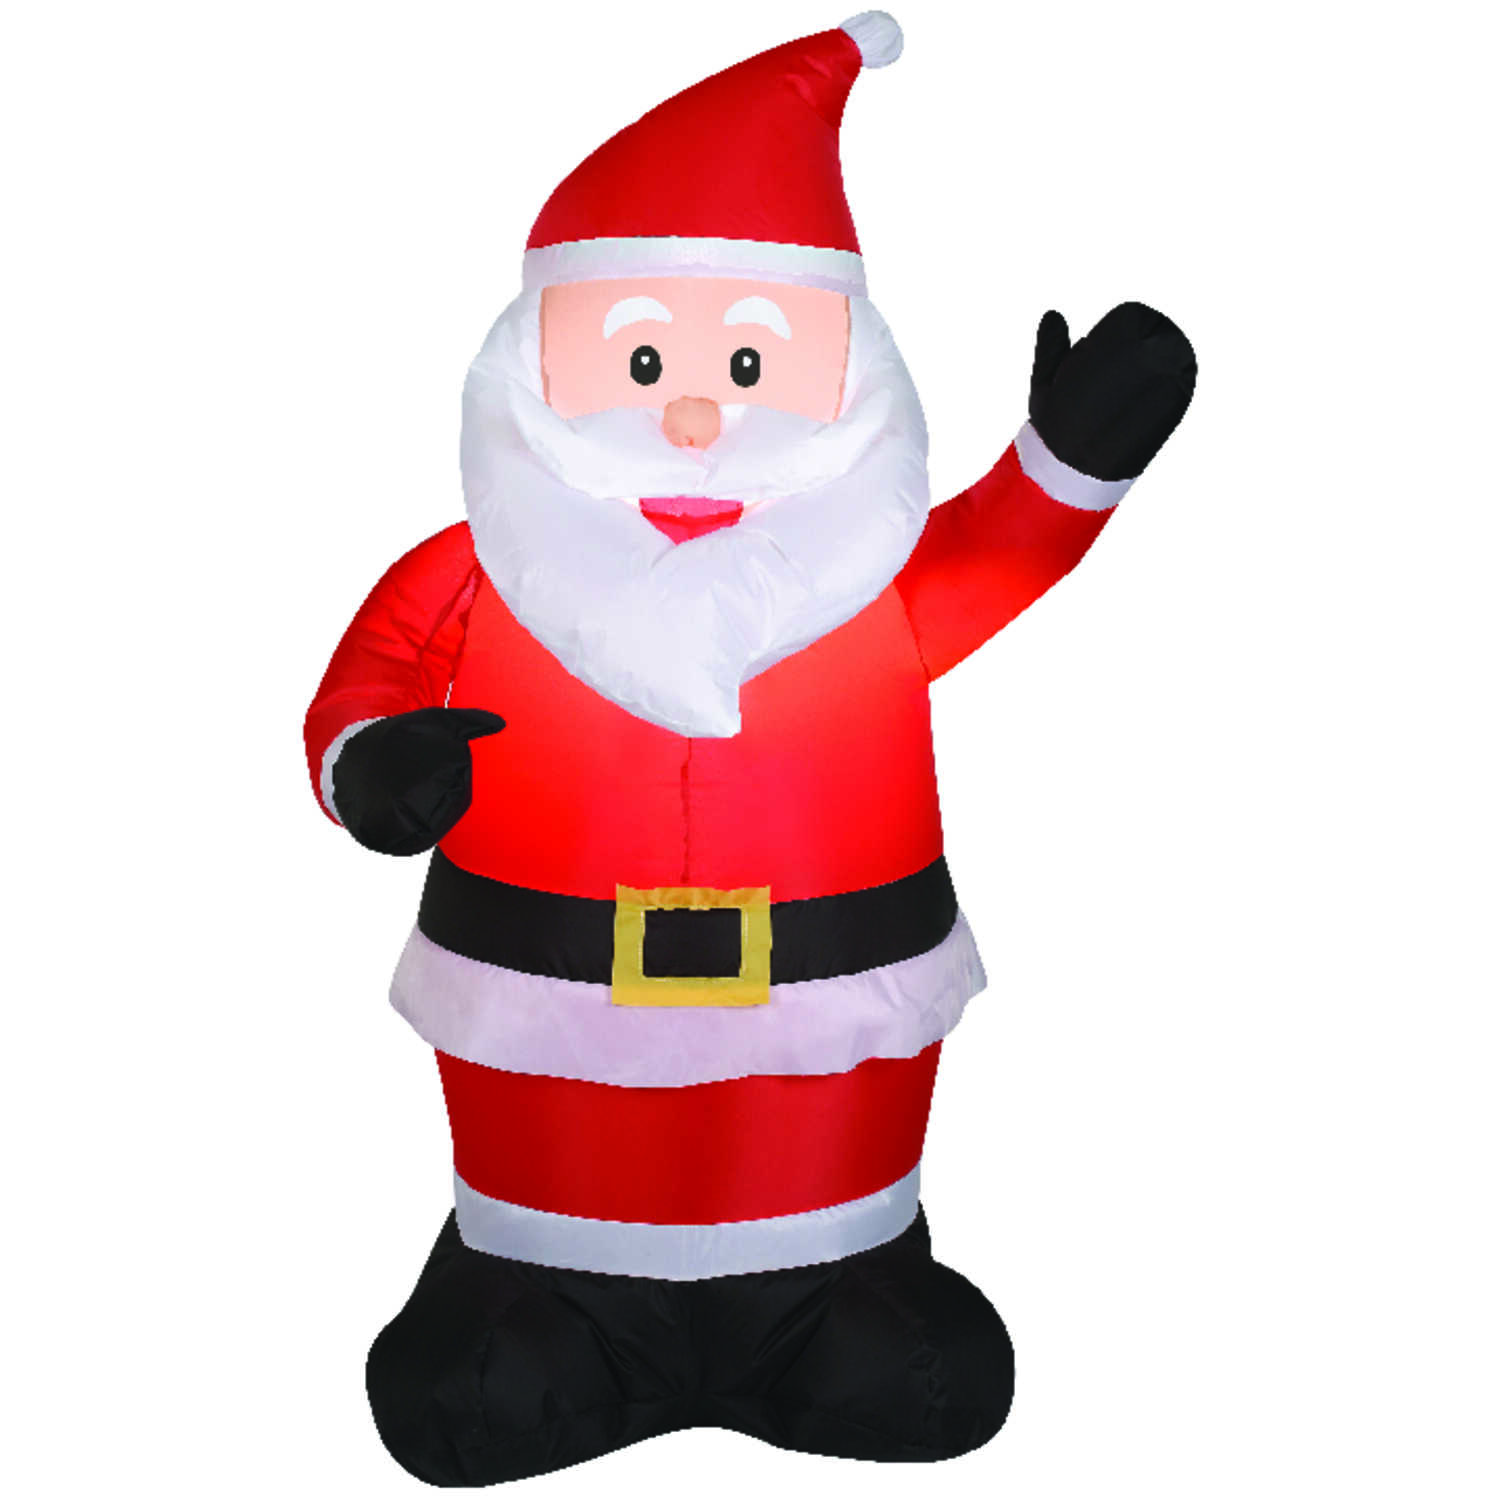 Gemmy  Animated Santa  Christmas Inflatable  Red  1 pk Velvet